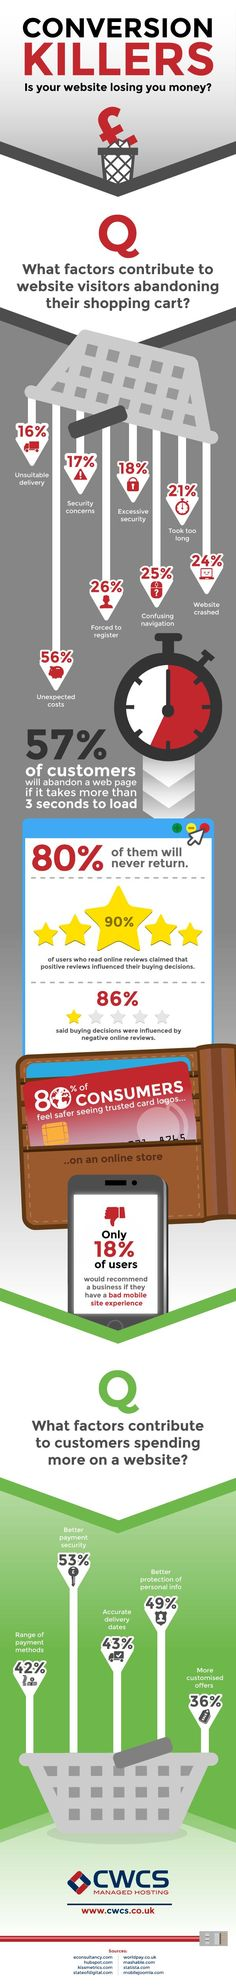 Conversion Killers Exposed - -  Why people leave shopping carts.  What gets consumers to spend more.